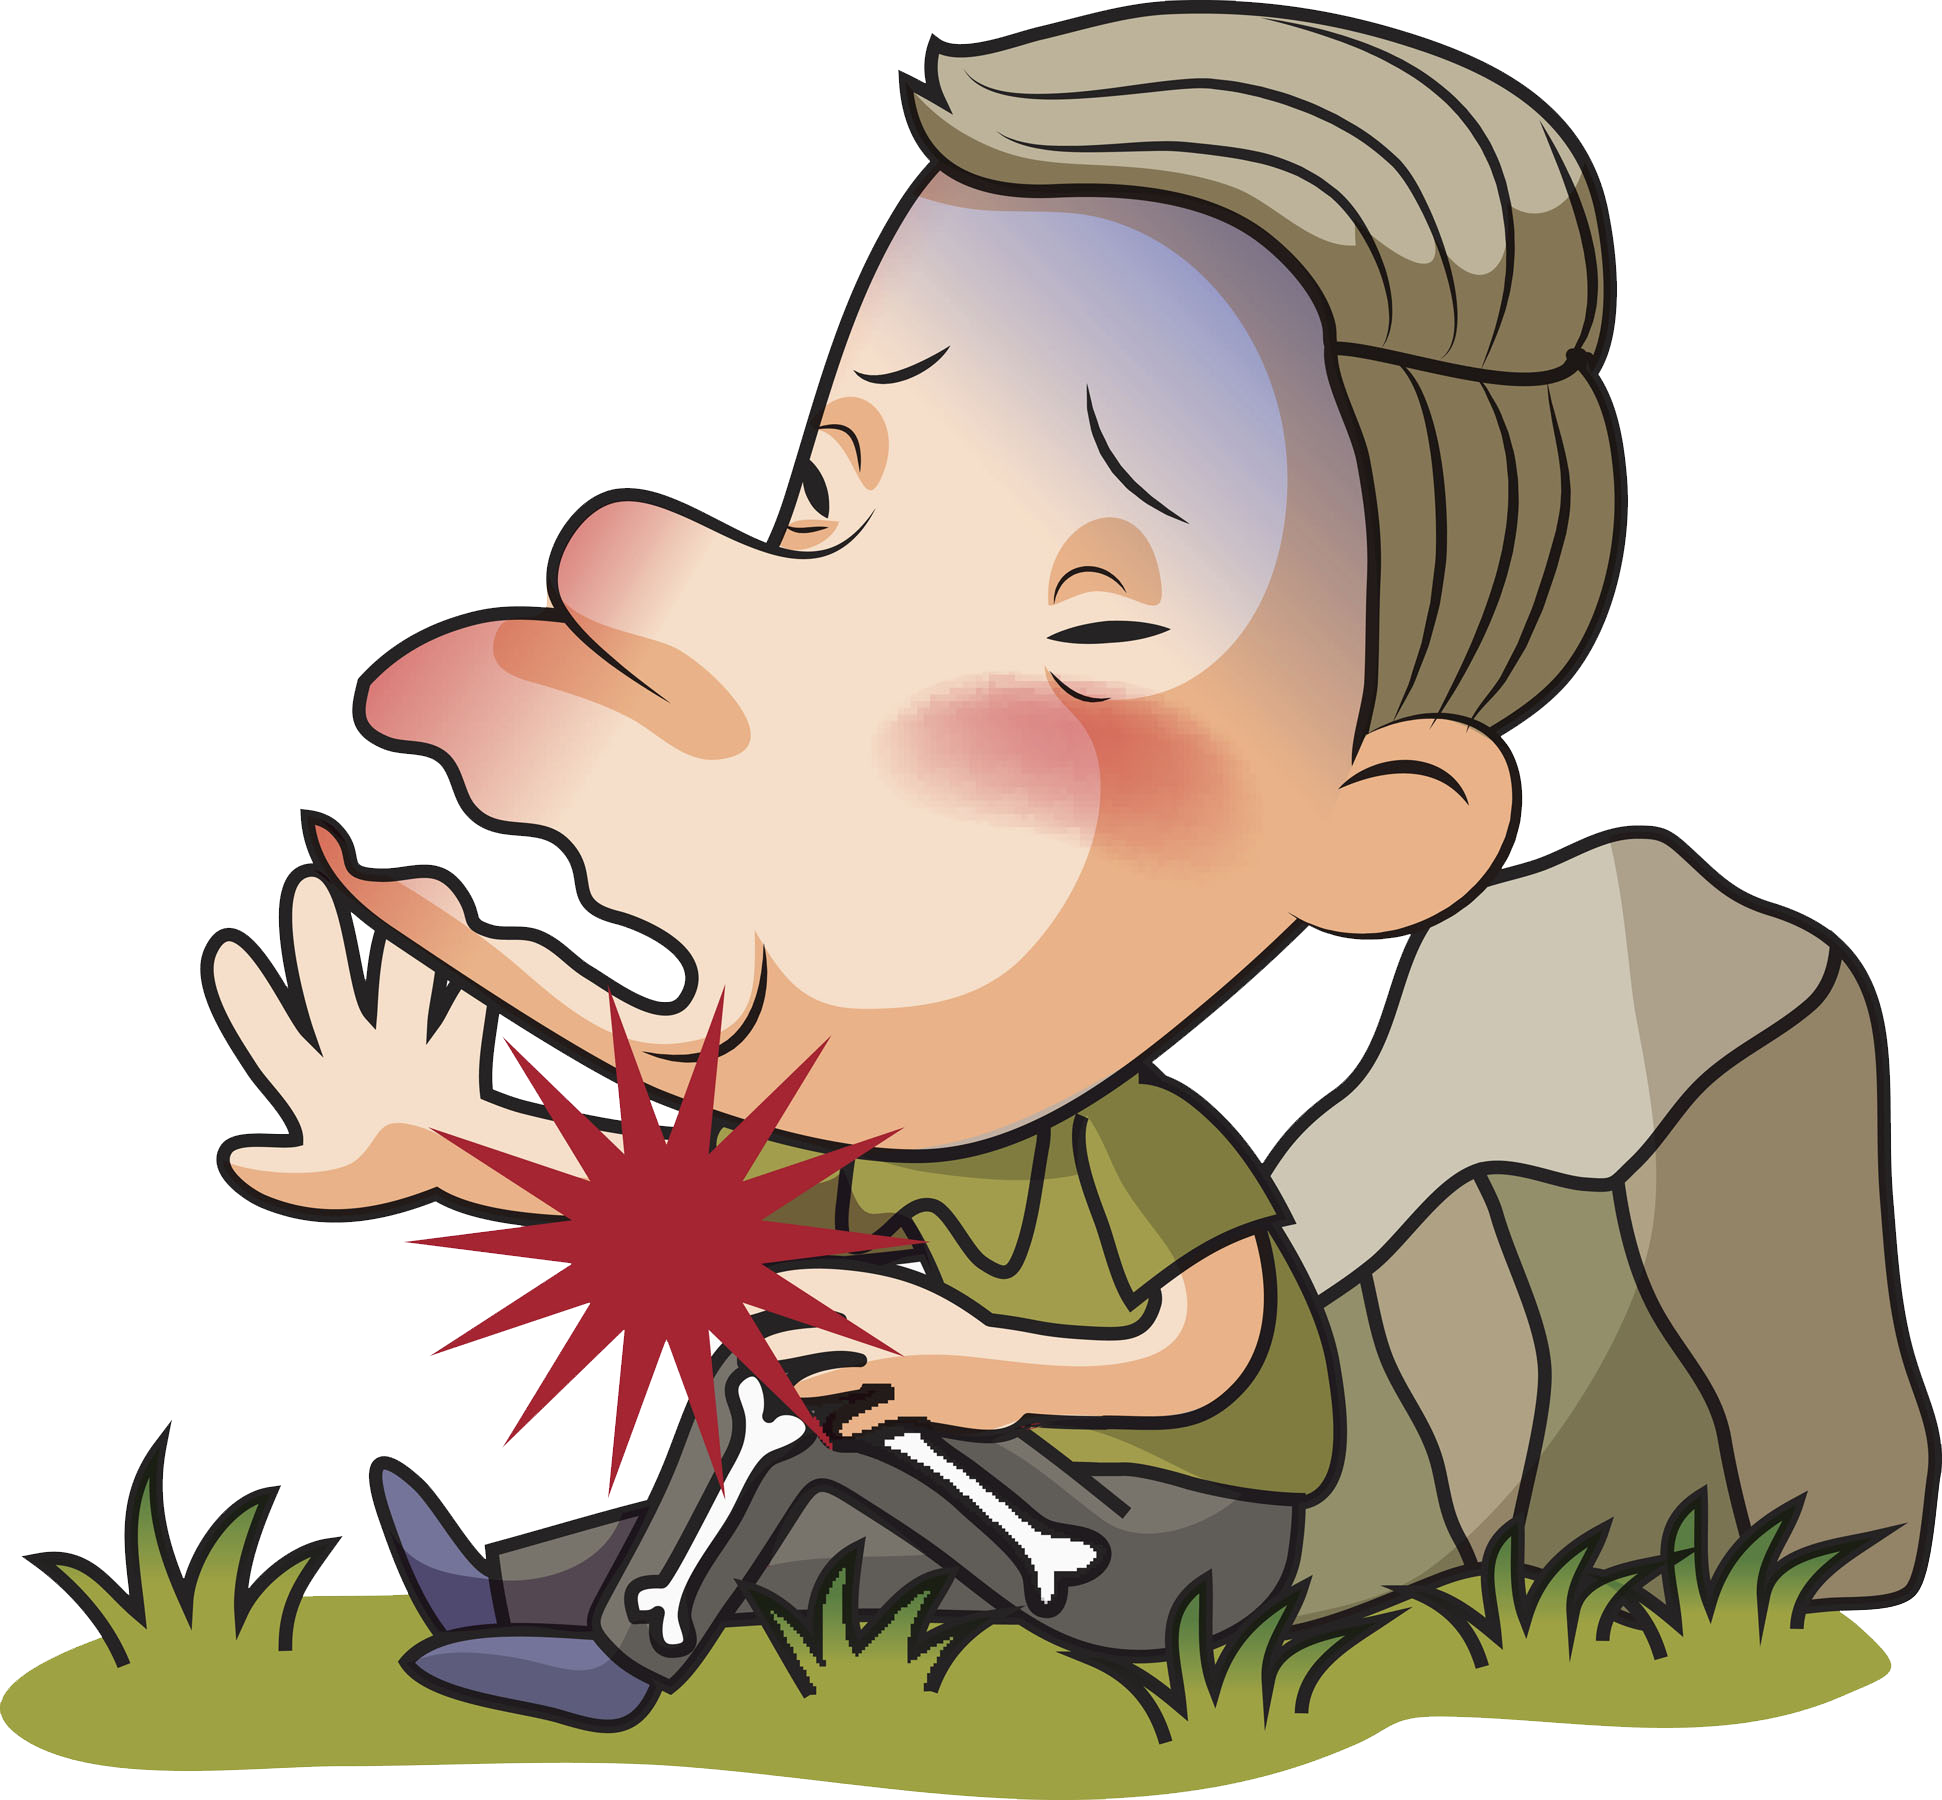 Human clipart stone age man. Falling old clip art